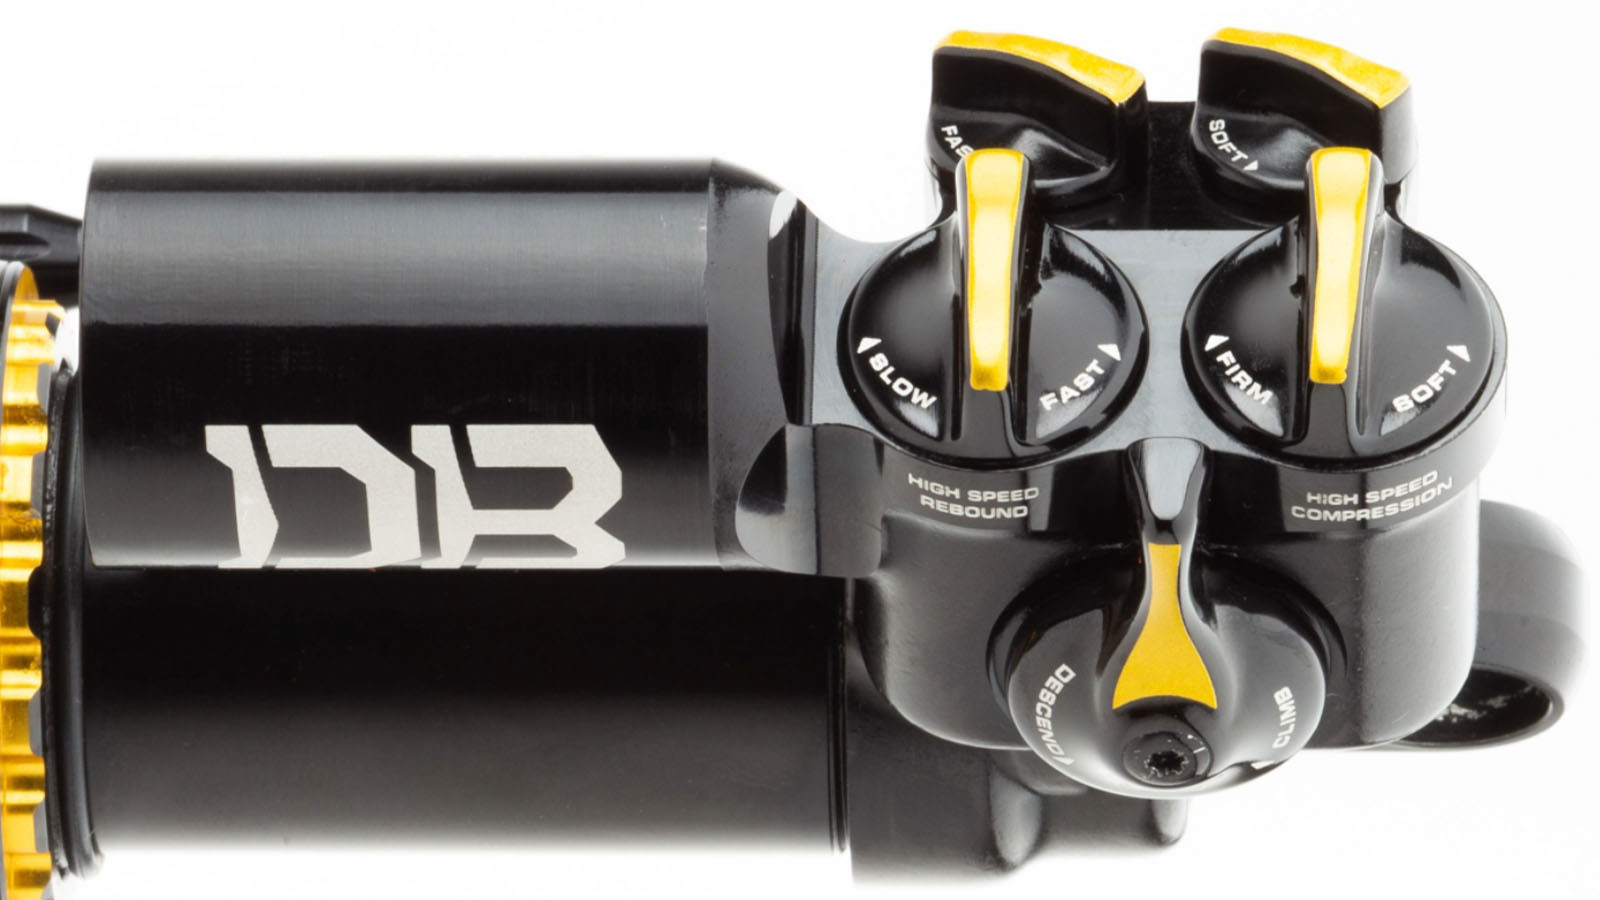 Coil or Air - Cane Creek's All-New, Incredibly Adjustable Kitsuma Shock